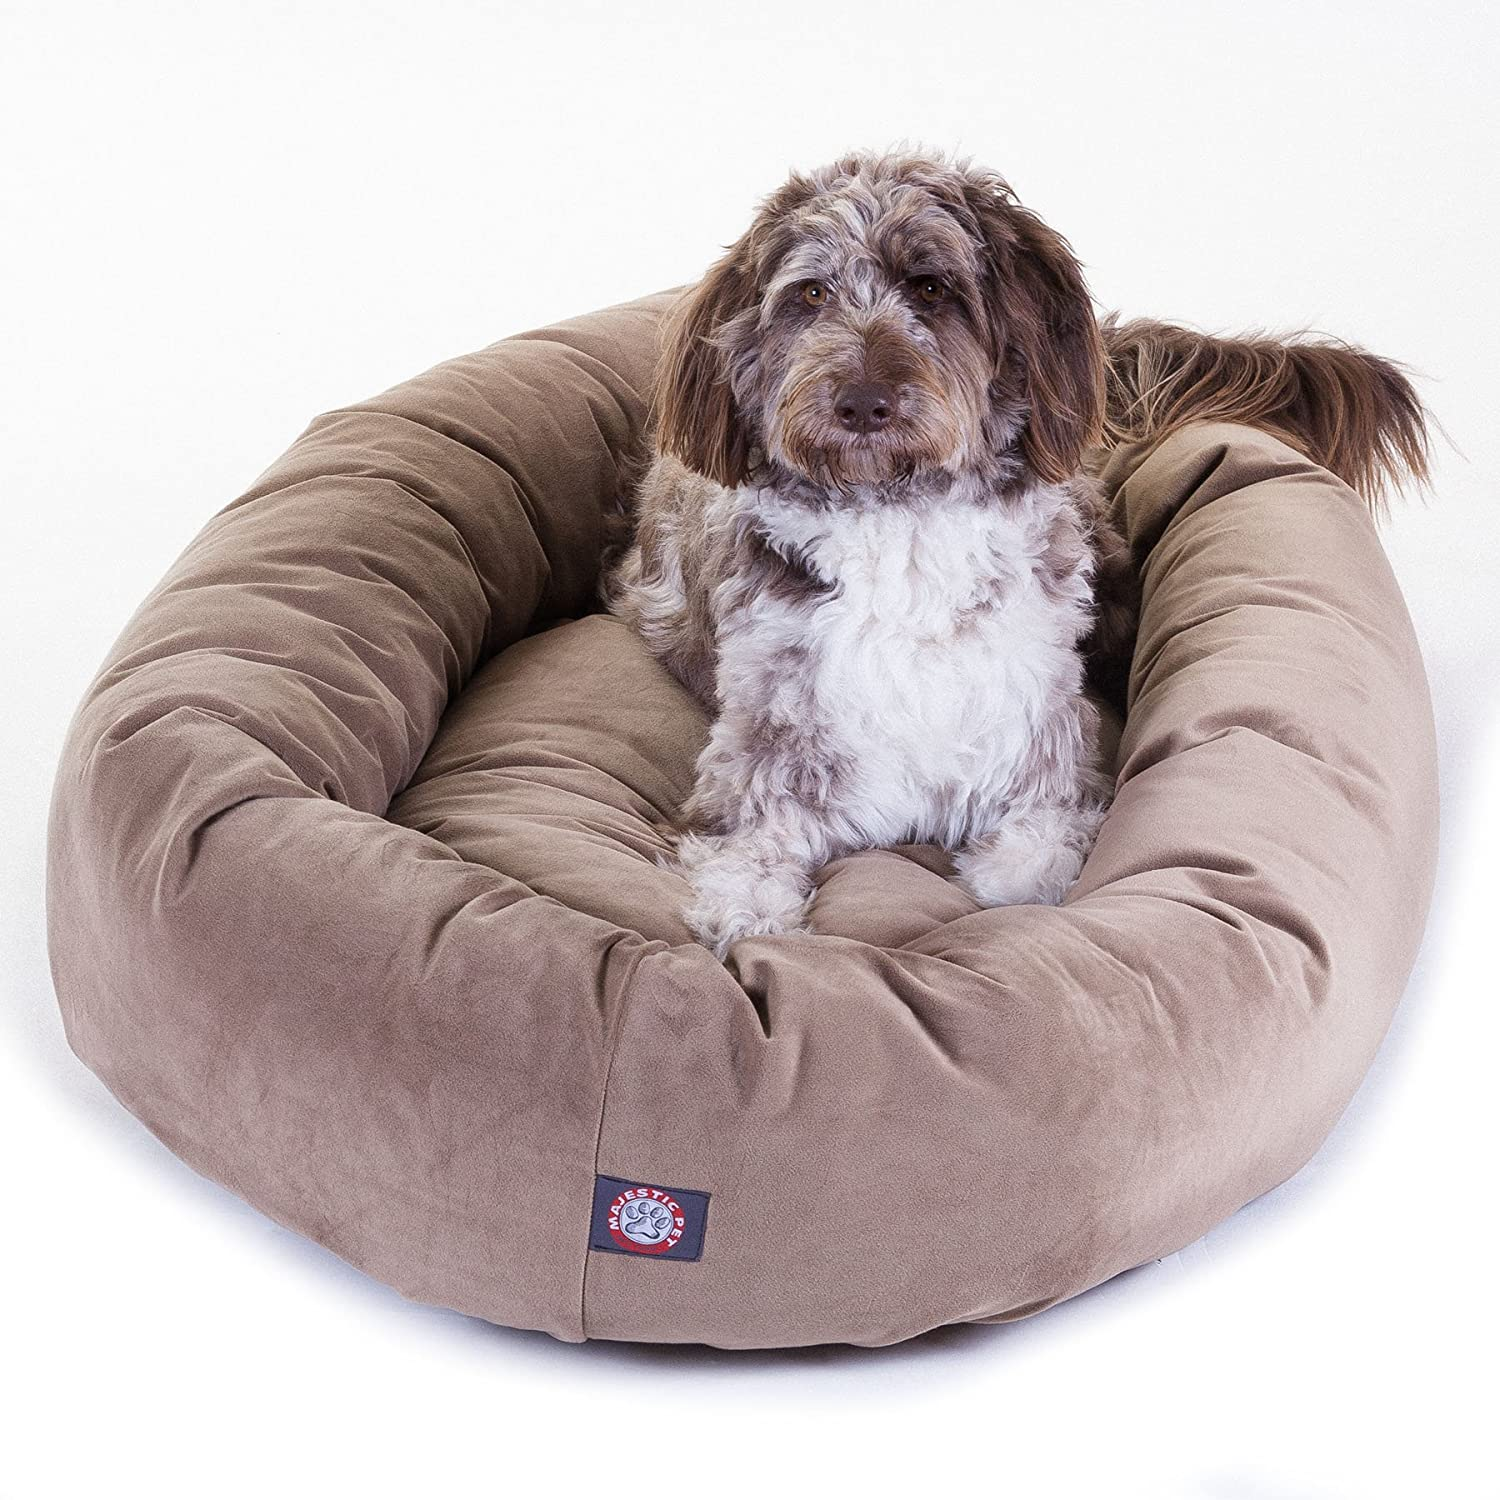 Majestic Pet ExtraLarge 52 Bagel Dog Pet Bed MicroSuede  Stone by Majestic Pet